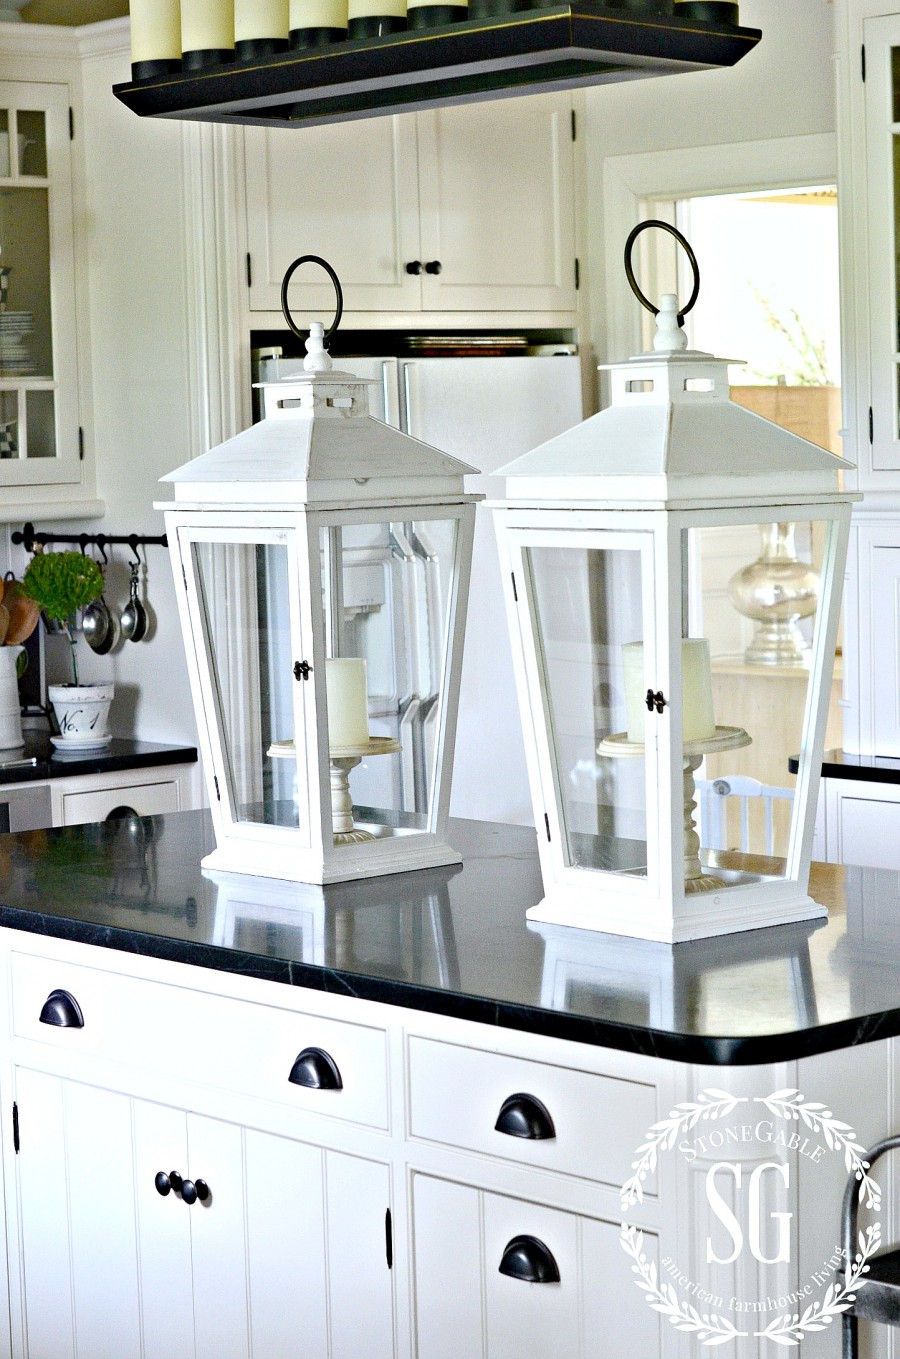 8 WAYS TO BRIGHTEN UP YOUR KITCHEN- Nothing brightens up your kitchen like a little bit of white. Here's some clever ways to create a radiant and fresh kitchen!